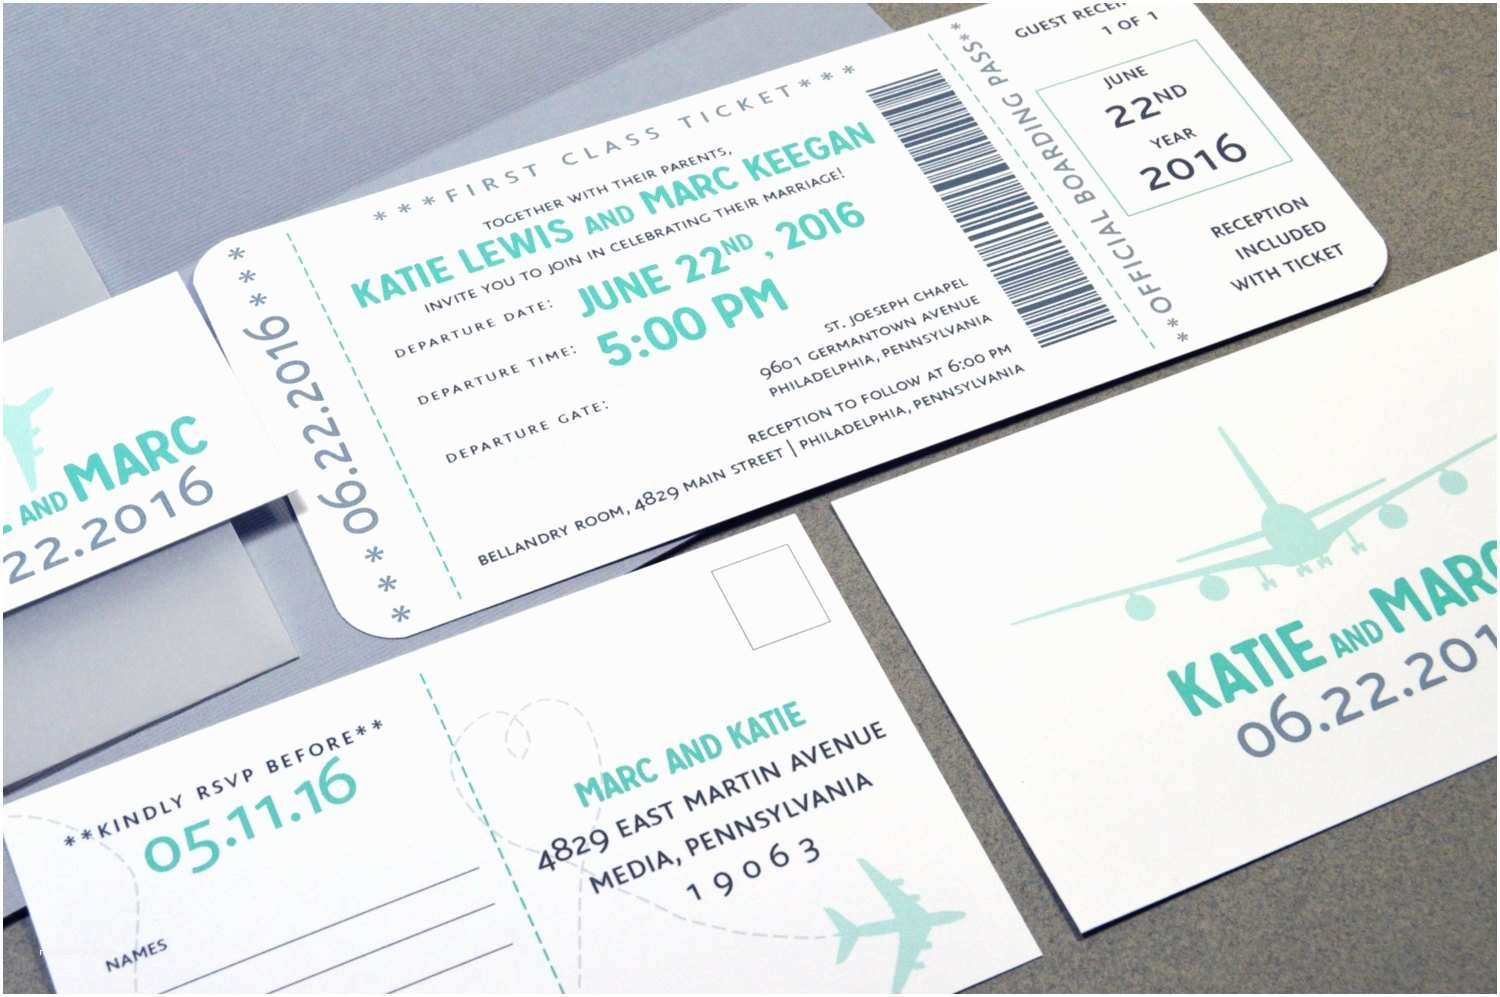 Plane Ticket Wedding Invitation Template Free Boarding Pass Wedding Invitations Plane Ticket by